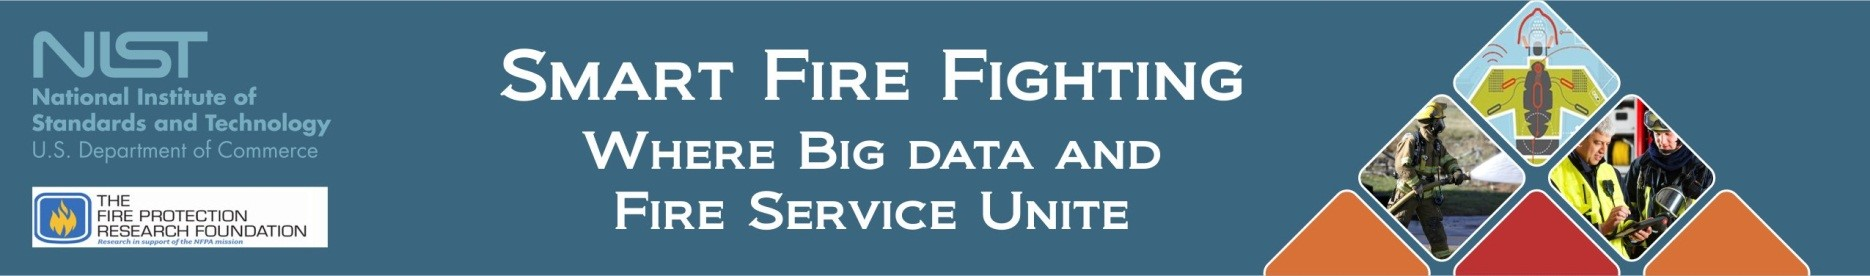 Smart Firefighting banner